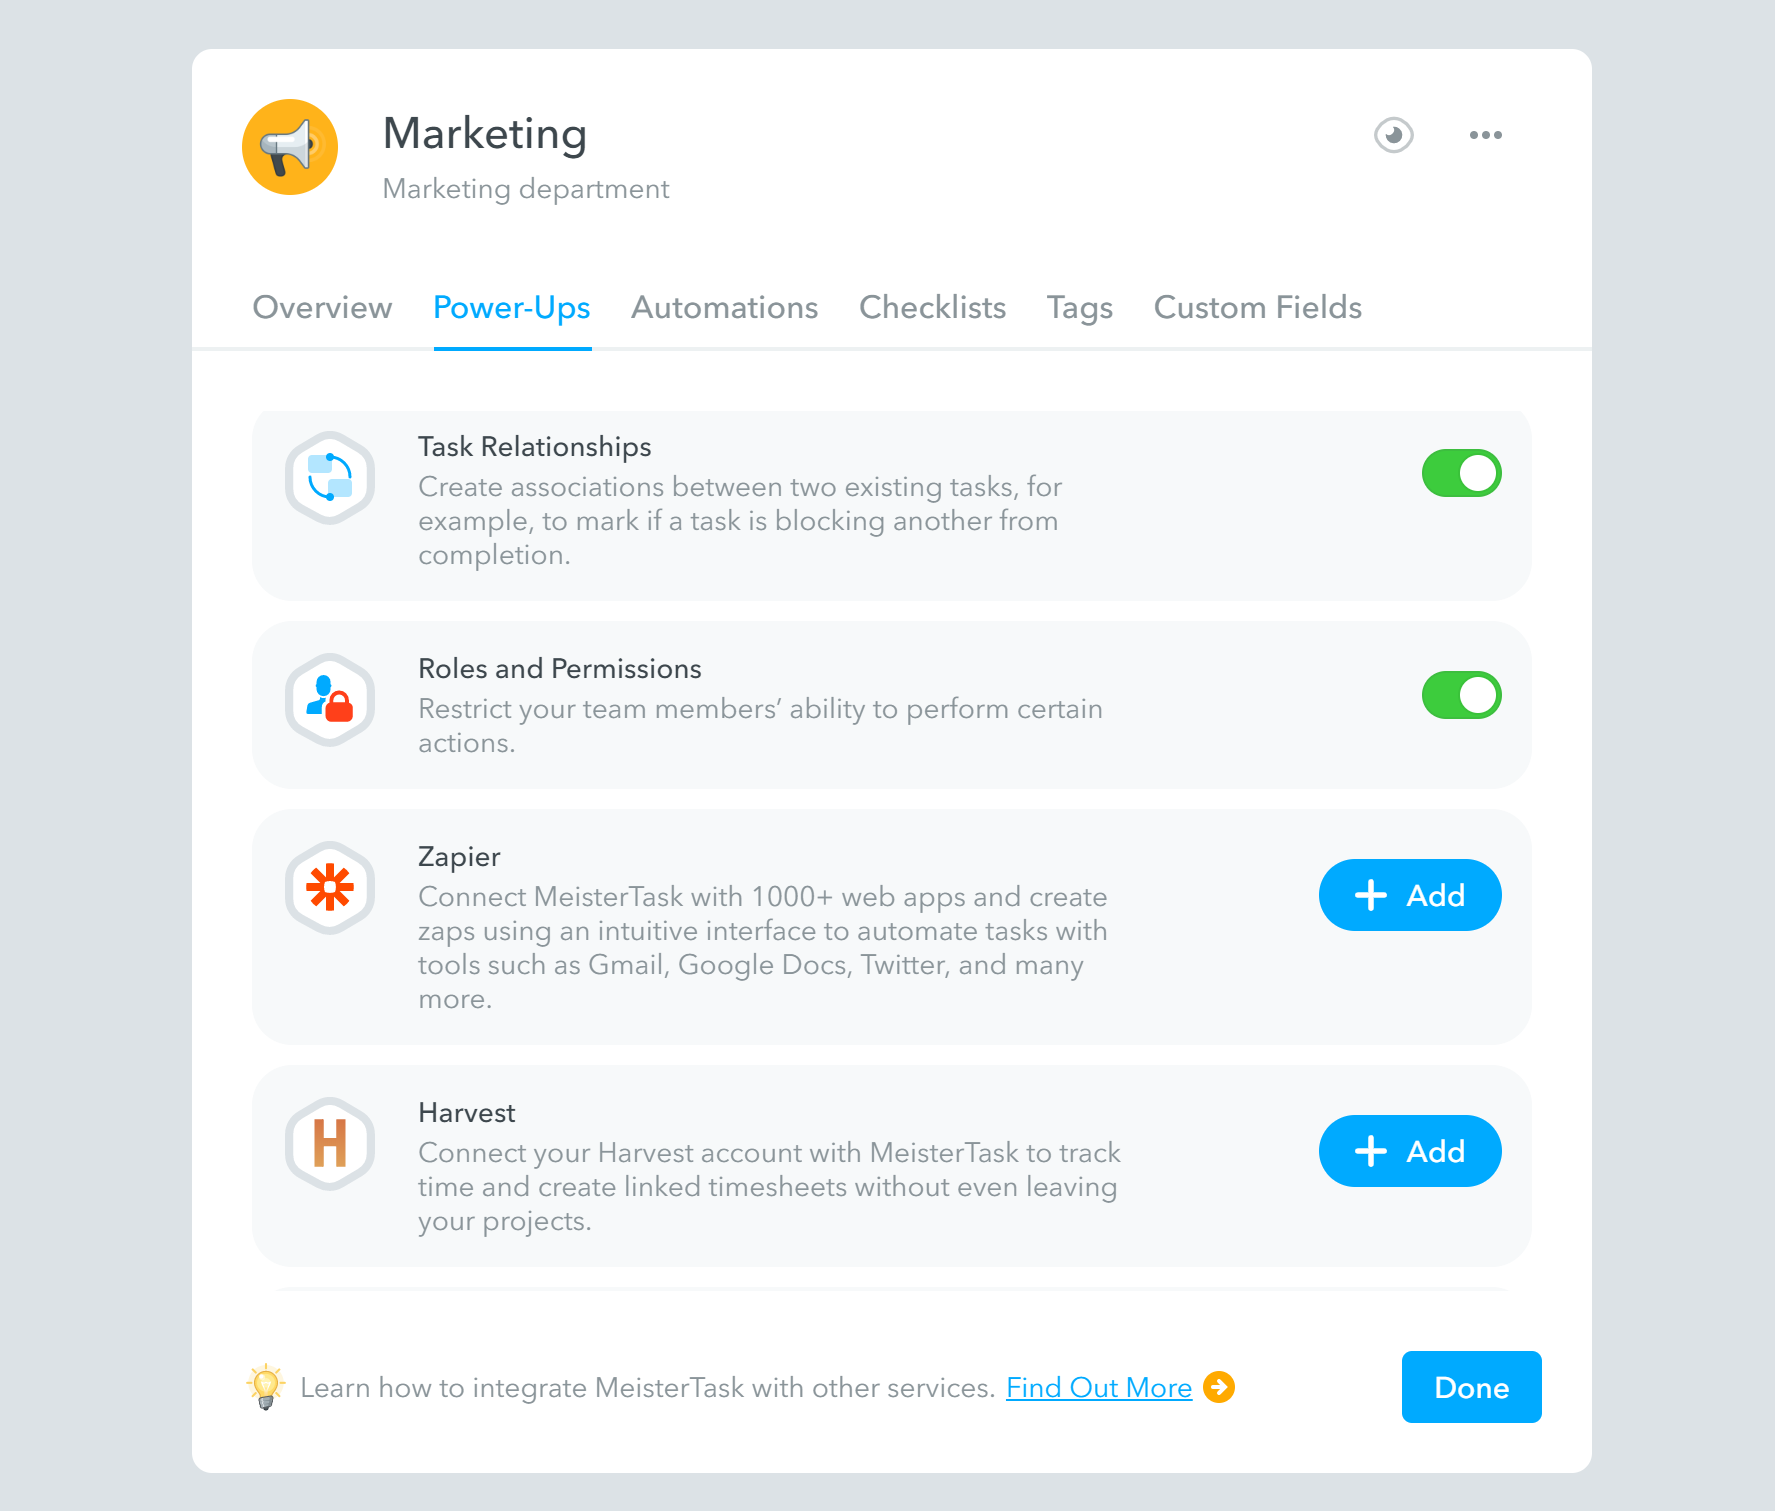 Marketing___MeisterTask_-_Google_Chrome_2019-08-12_15.44.45.png